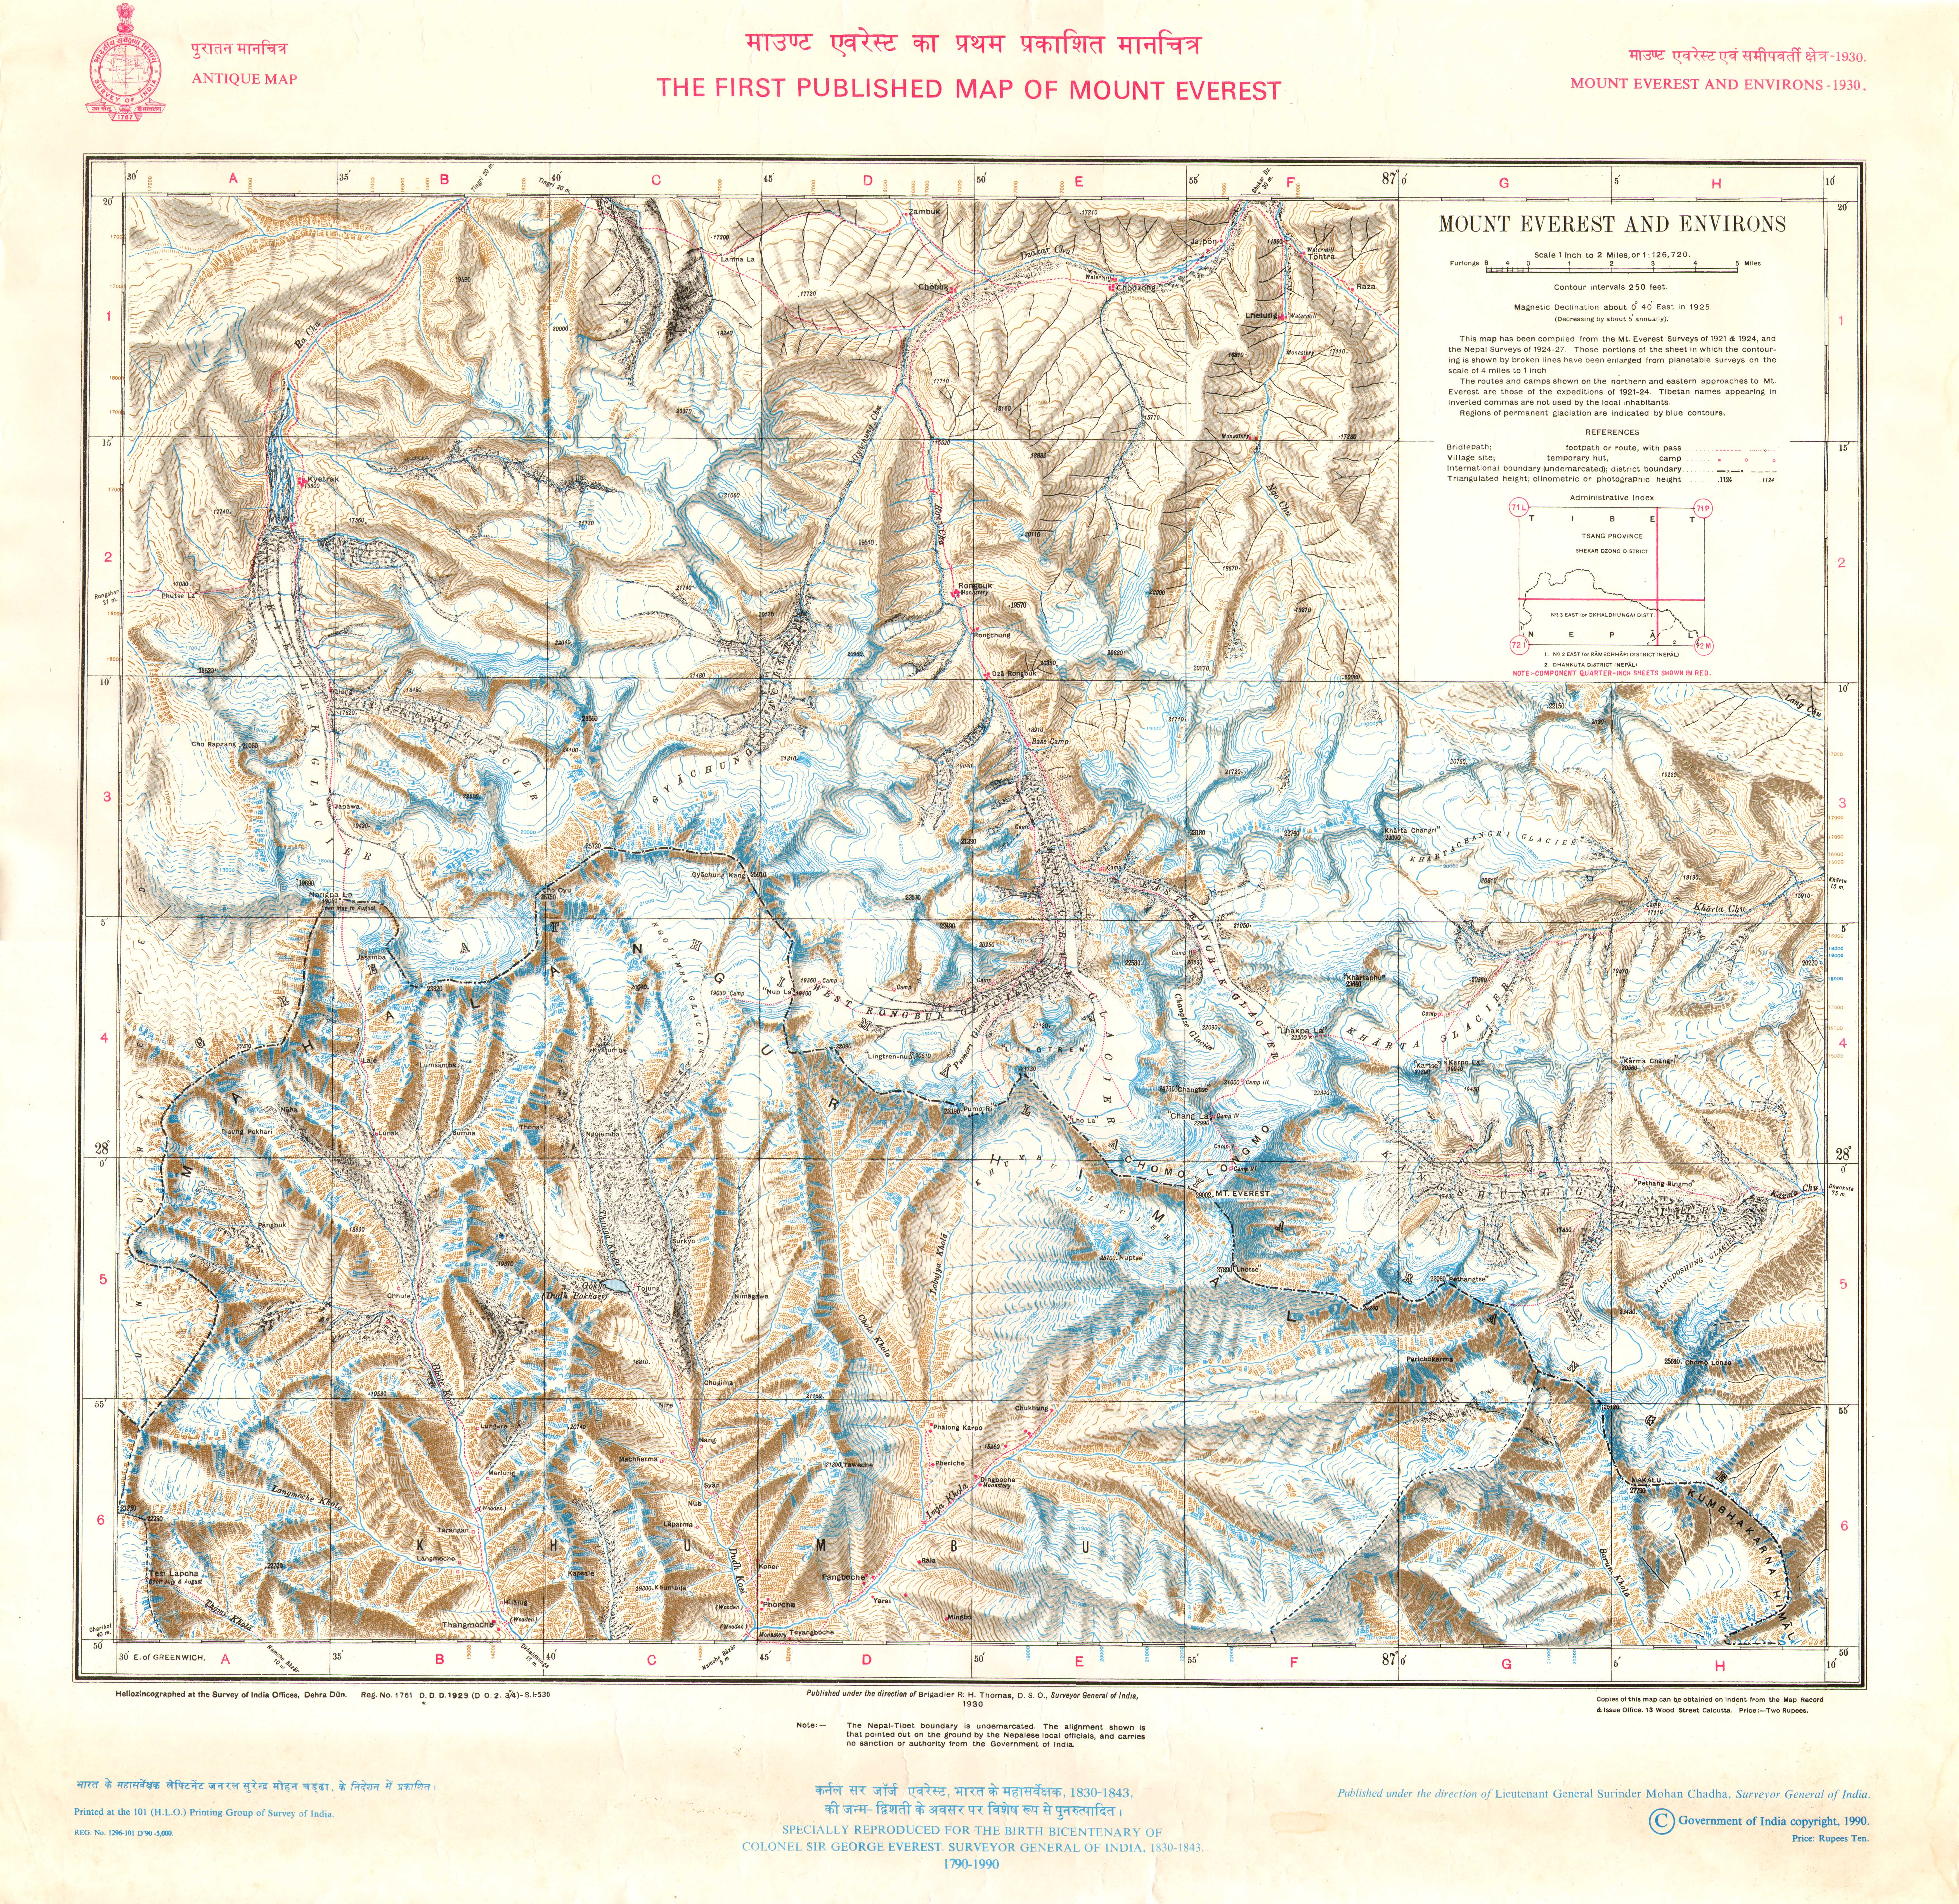 1930 Mount Everest and Environs by SoI